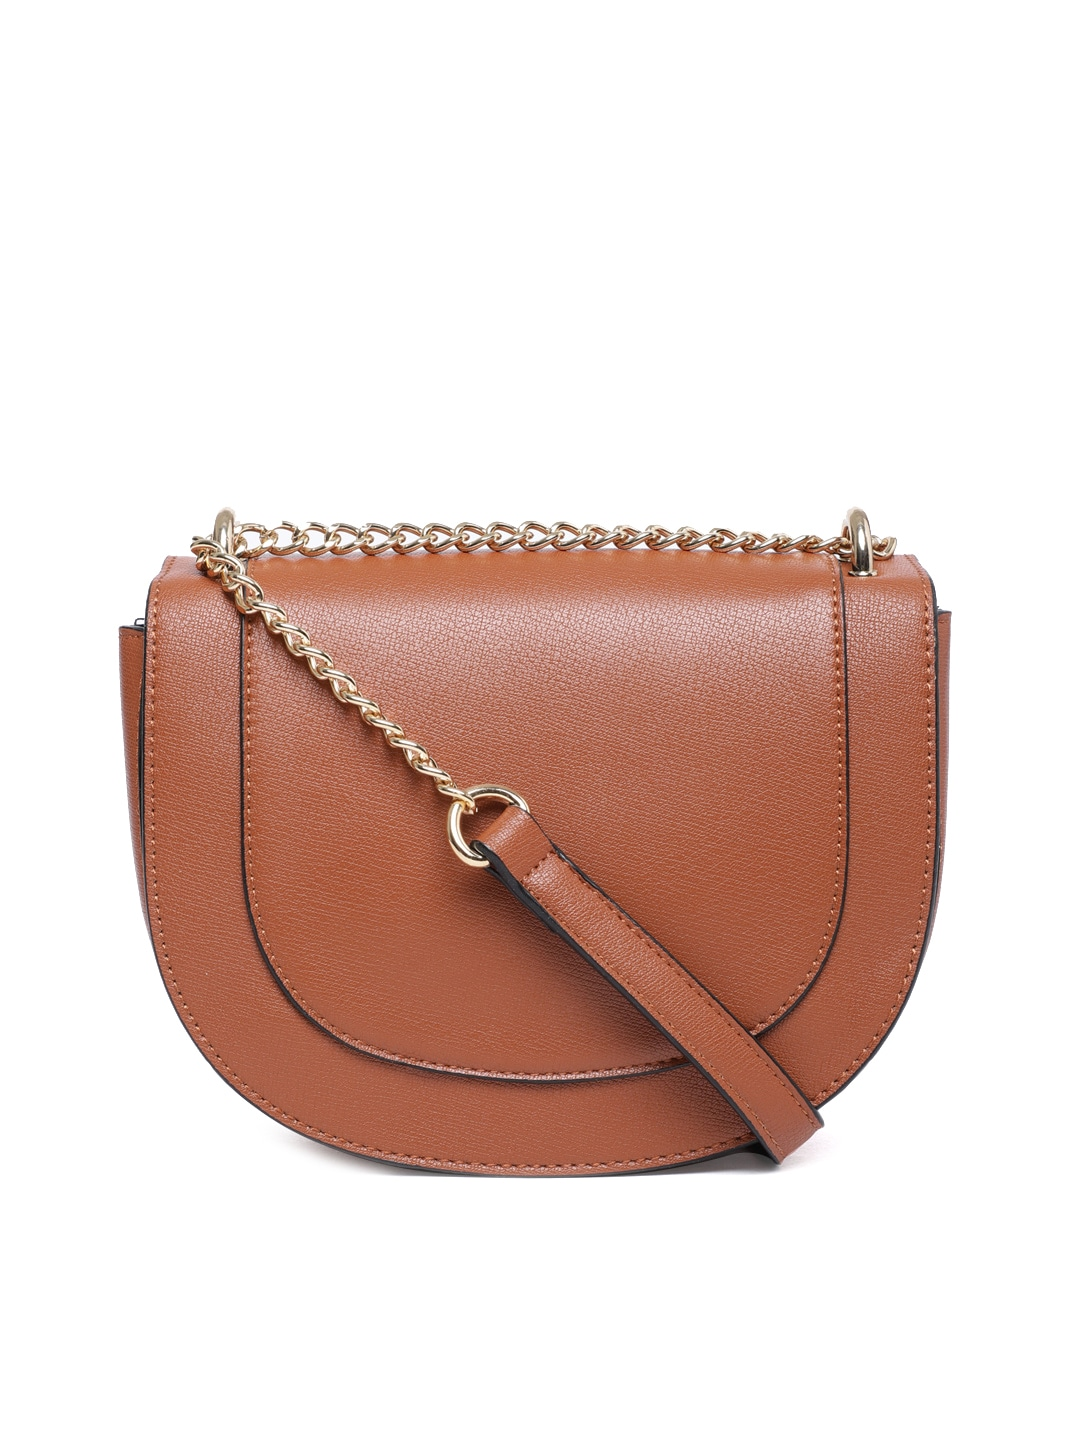 Forever 21 Bags - Buy Forever 21 Bags online in India bc6c62f1cb63b